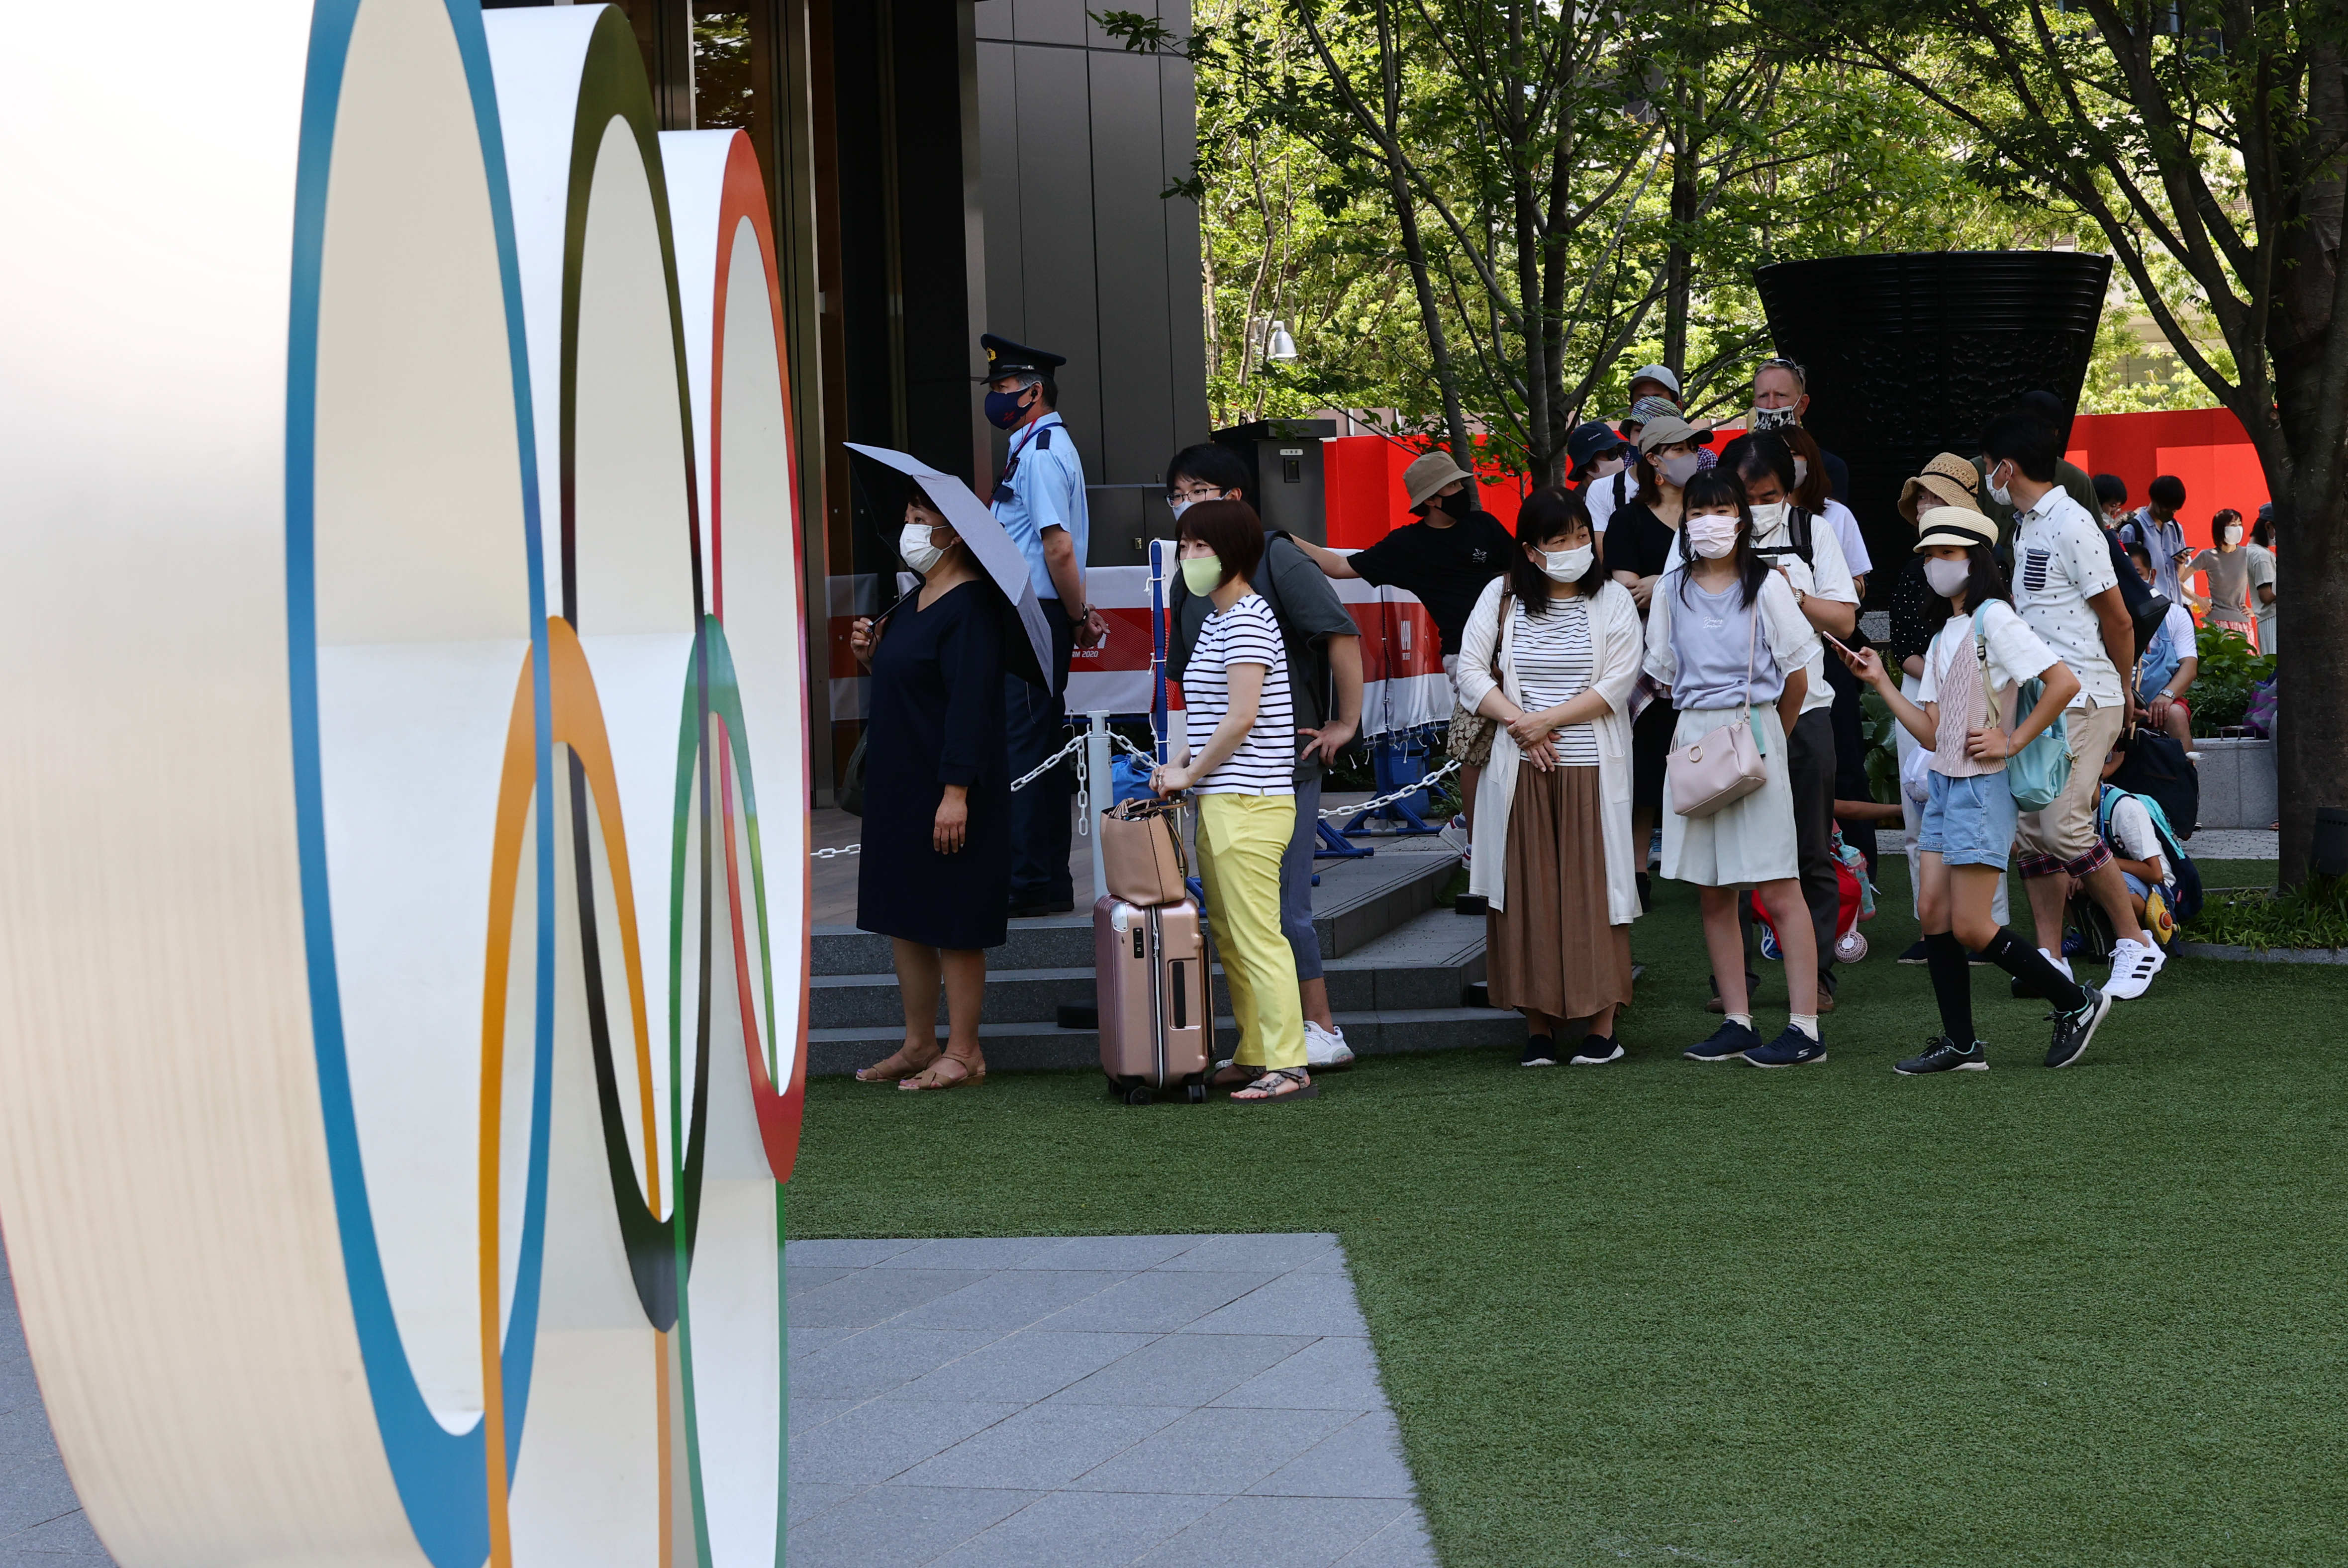 Tokyo 2020 Olympics Preview - Tokyo, Japan - July 22, 2021 People wearing protective face masks stand next to the Olympic rings REUTERS/Kim Kyung-Hoon